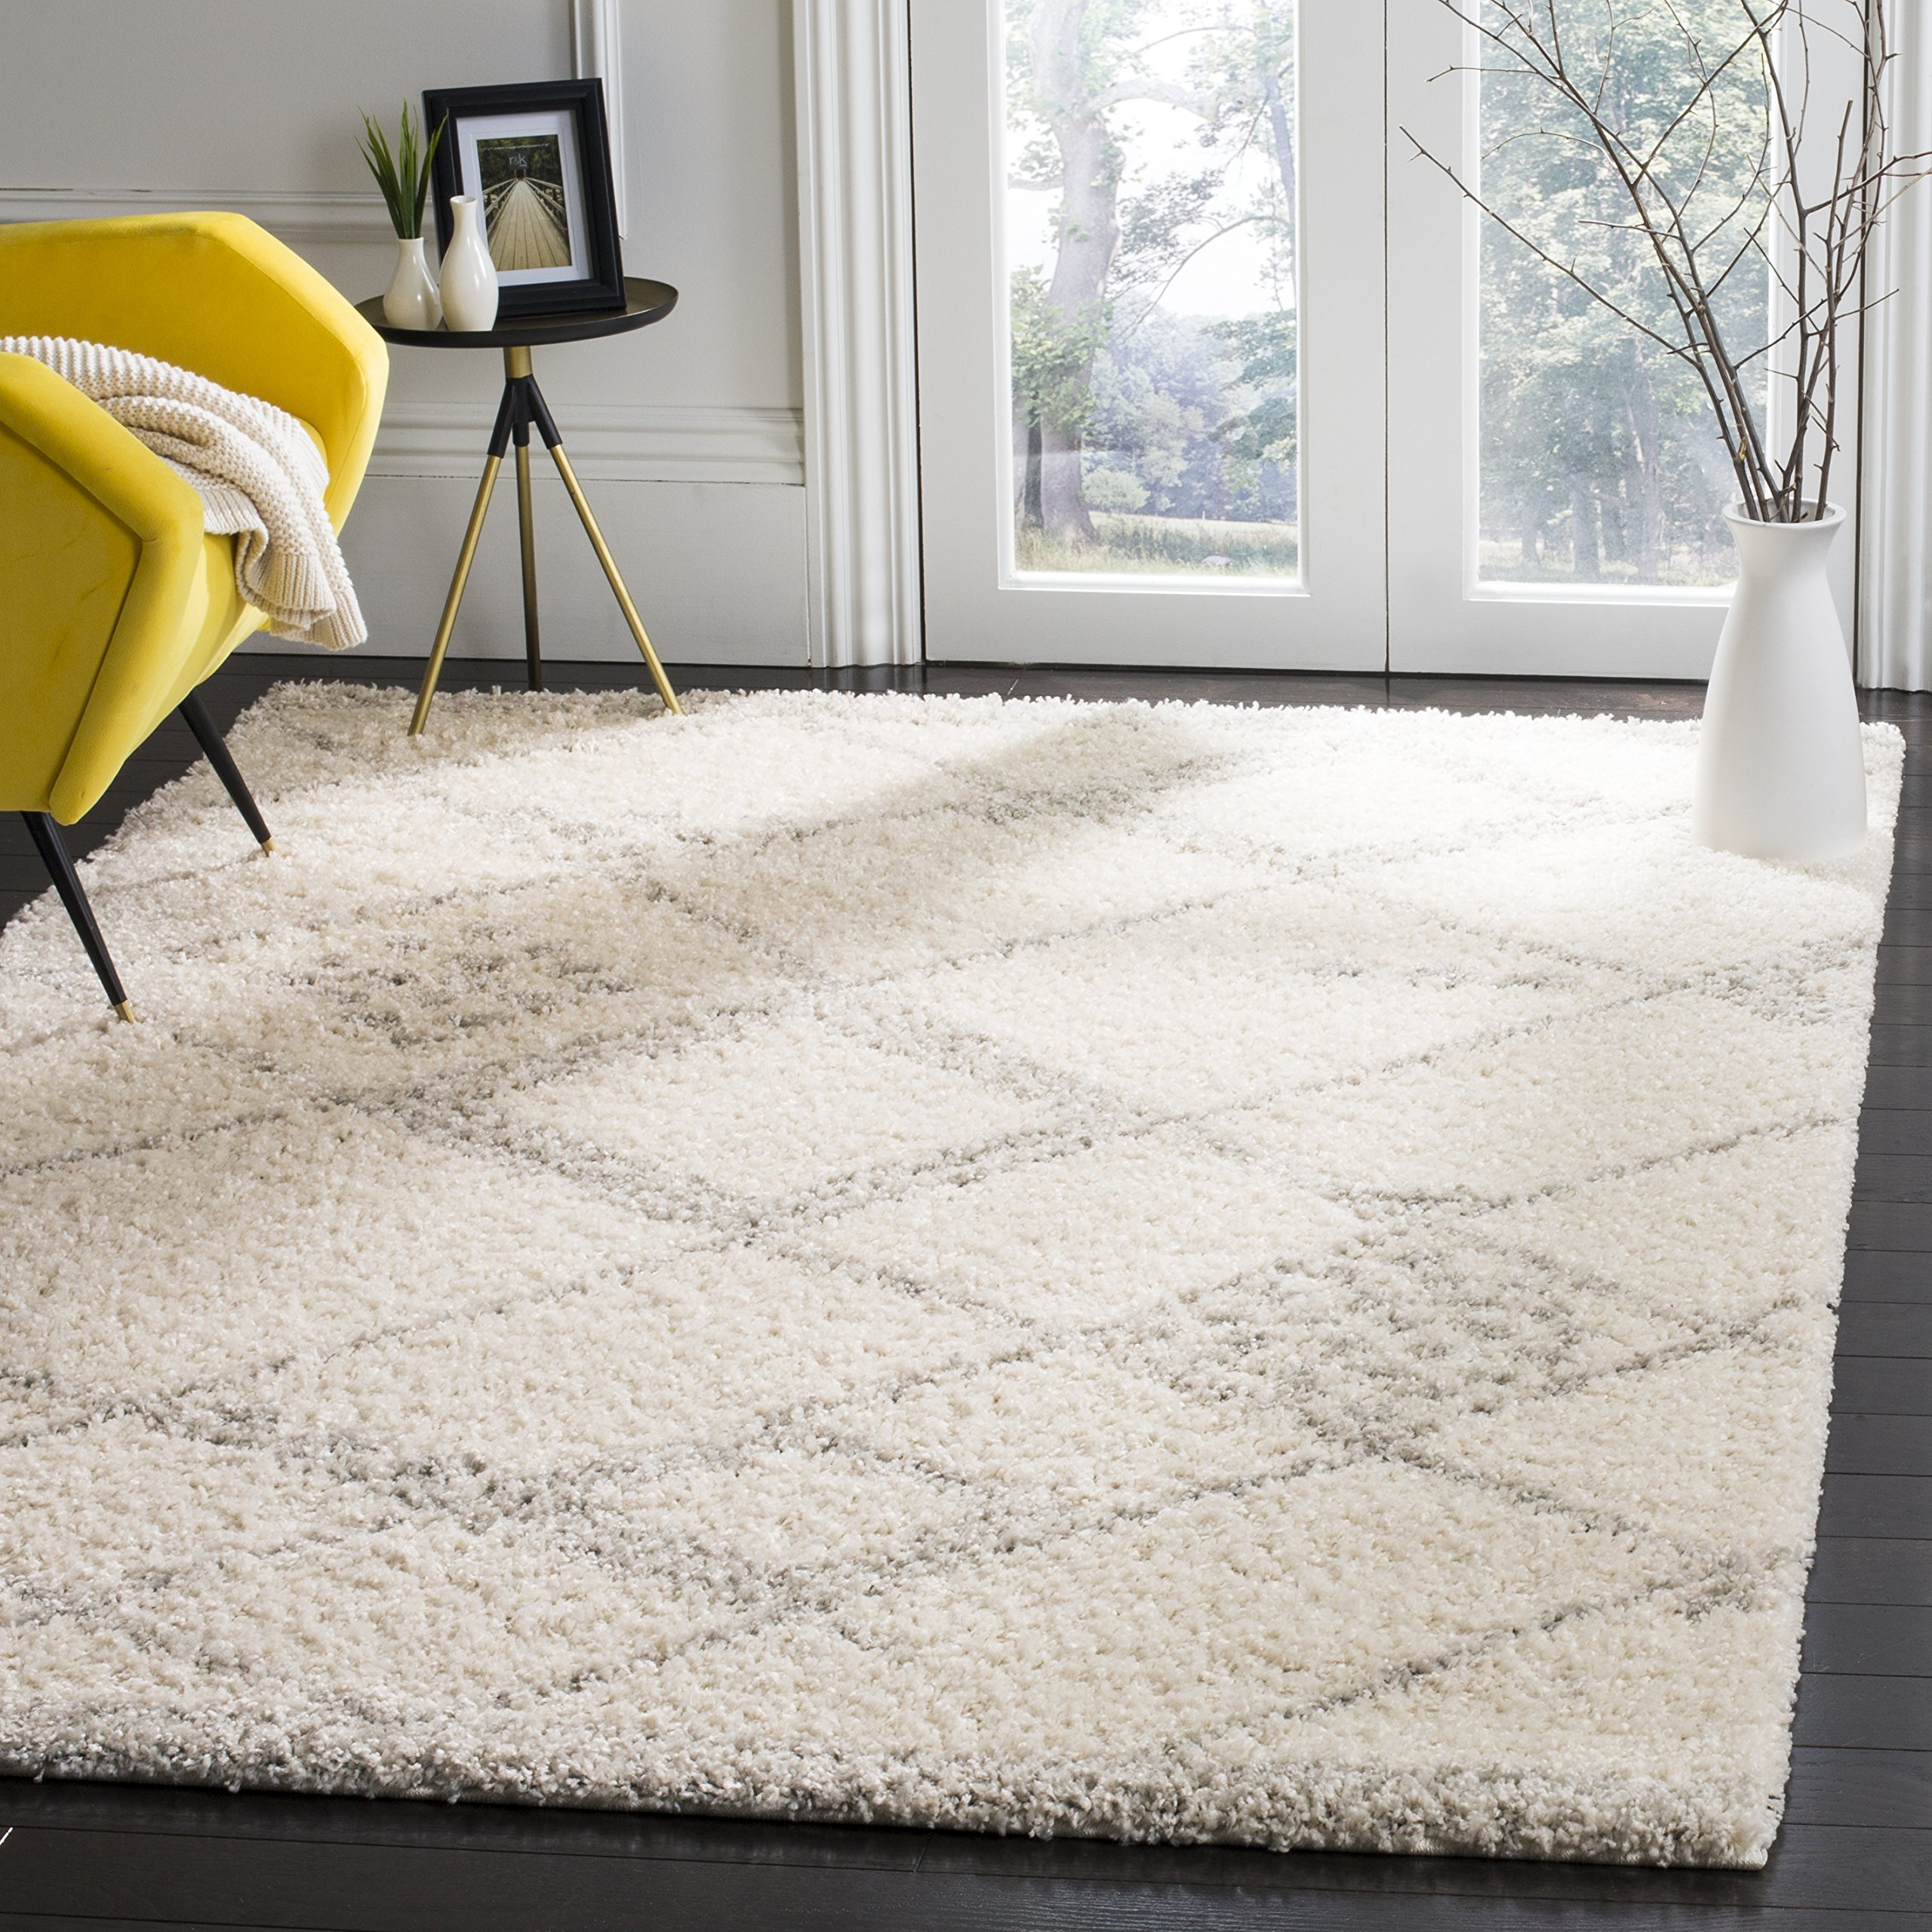 Safavieh Arizona Shag Collection ASG751G Ivory and Grey Area Rug (8' x 10') by Safavieh (Image #1)